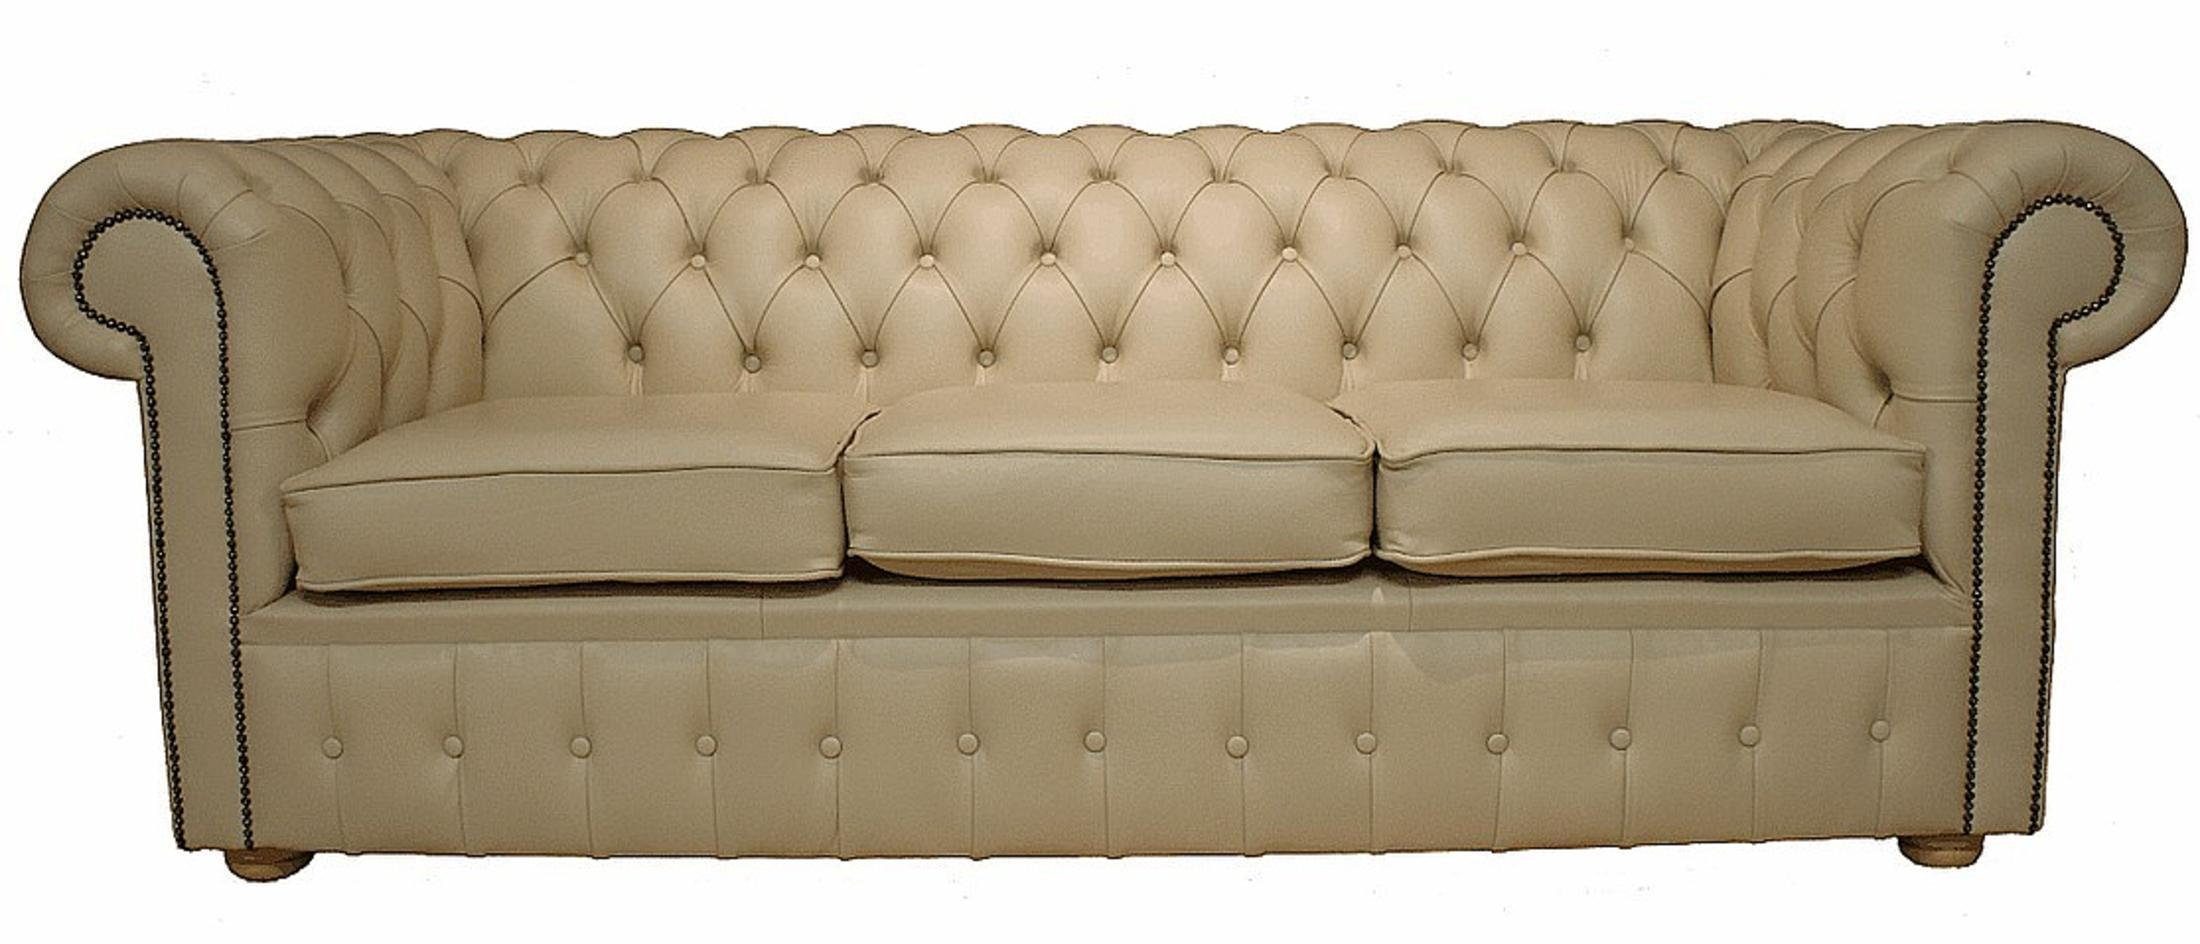 Ordinaire Chesterfield Sofa Cream